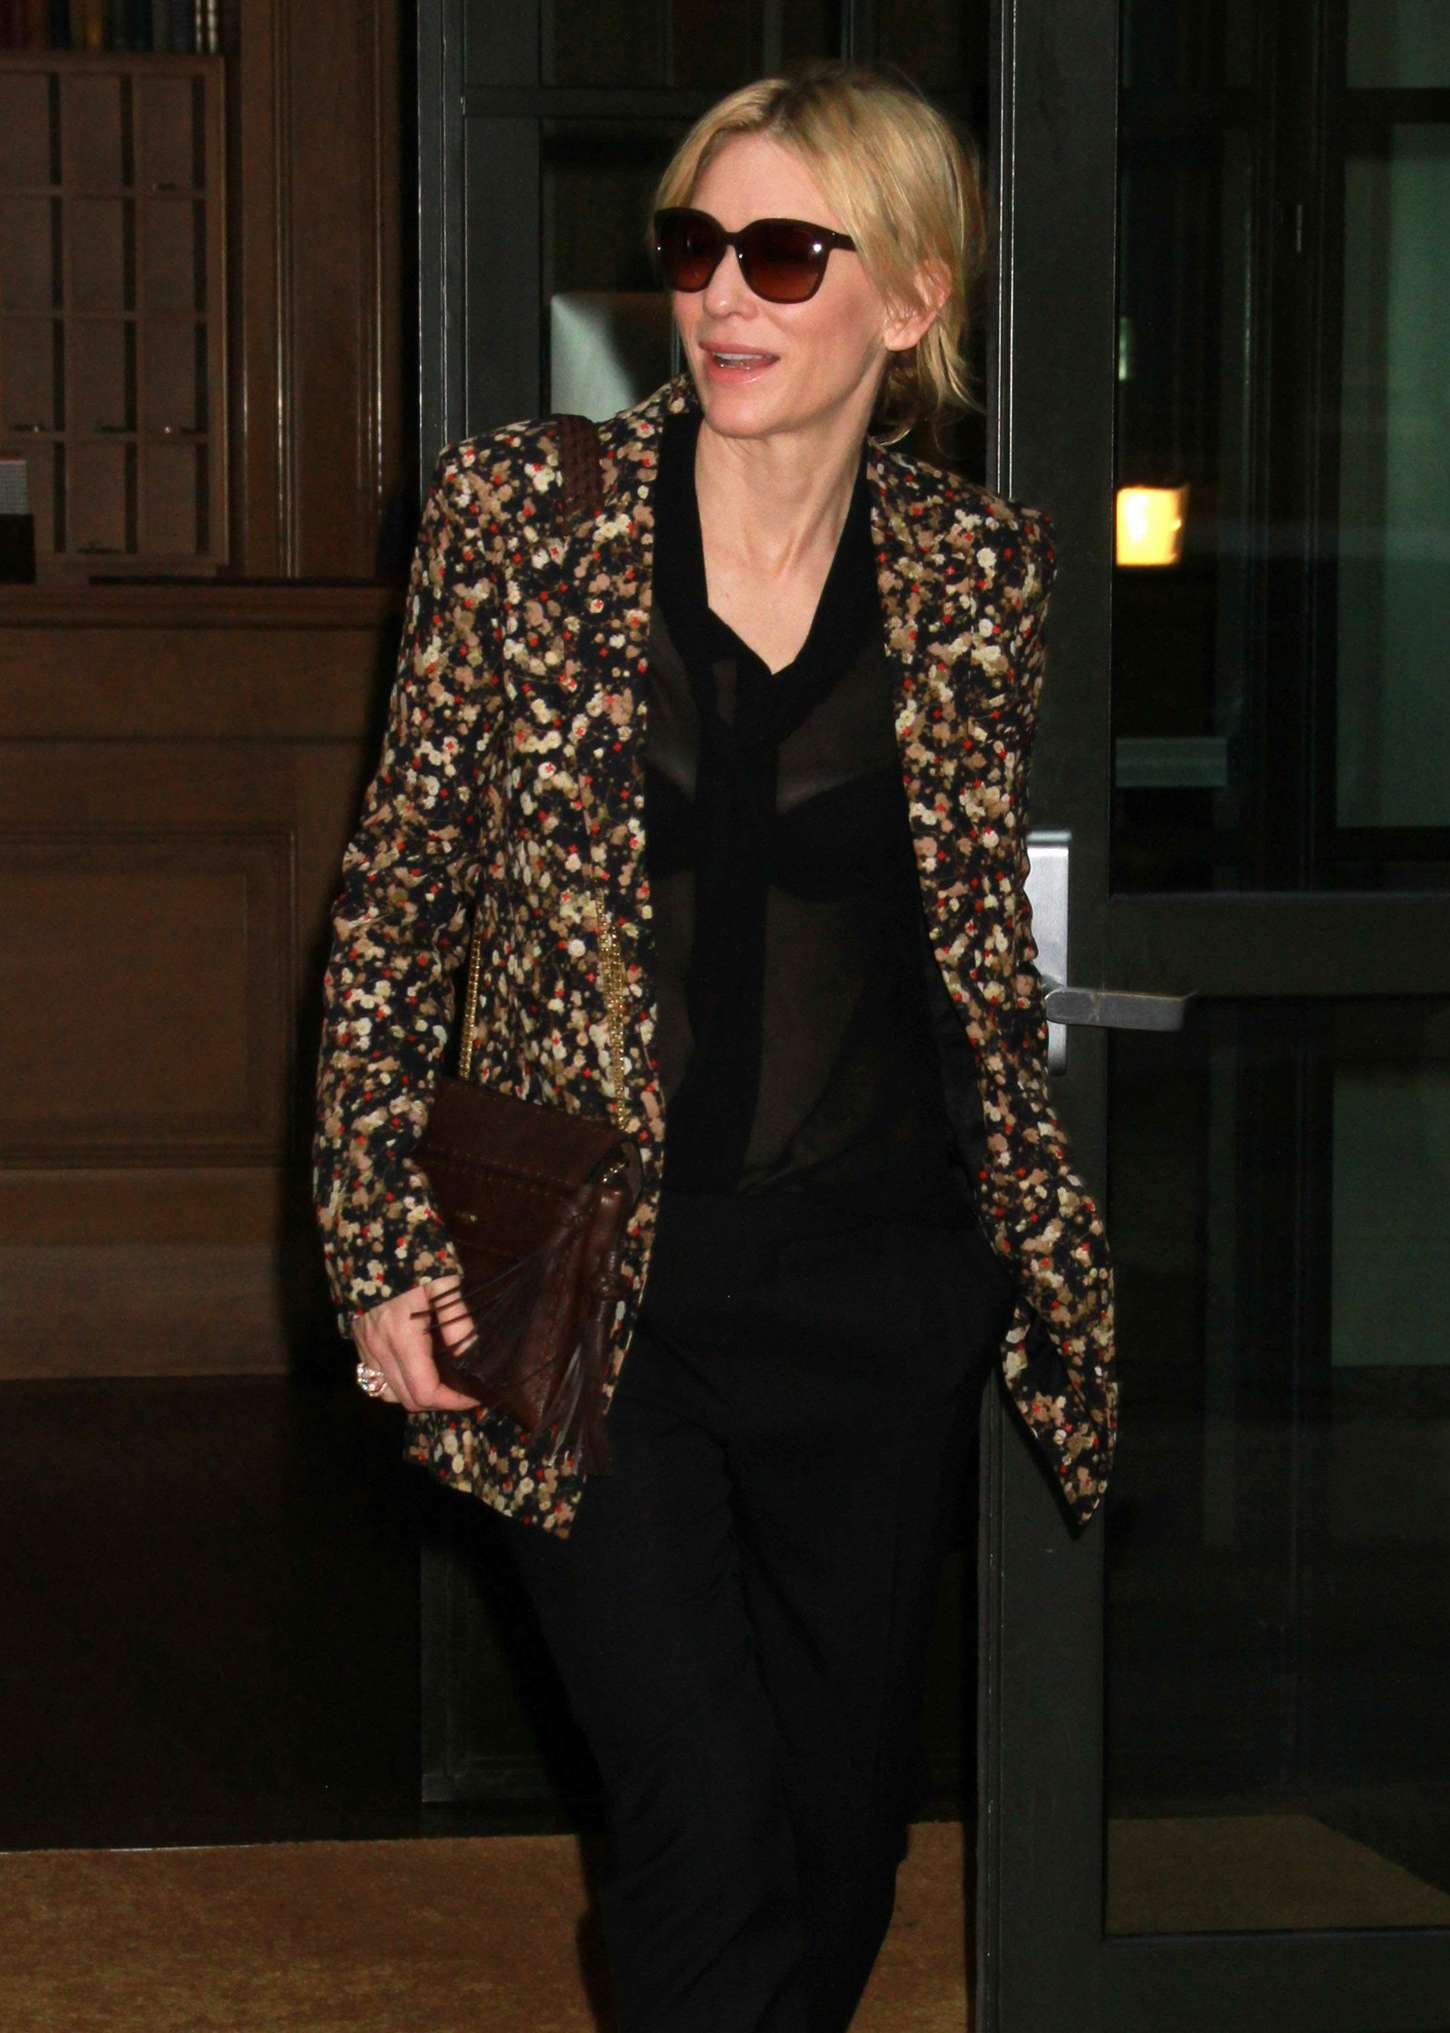 Cate Blanchett 2015 : Cate Blanchett out in New York City -02